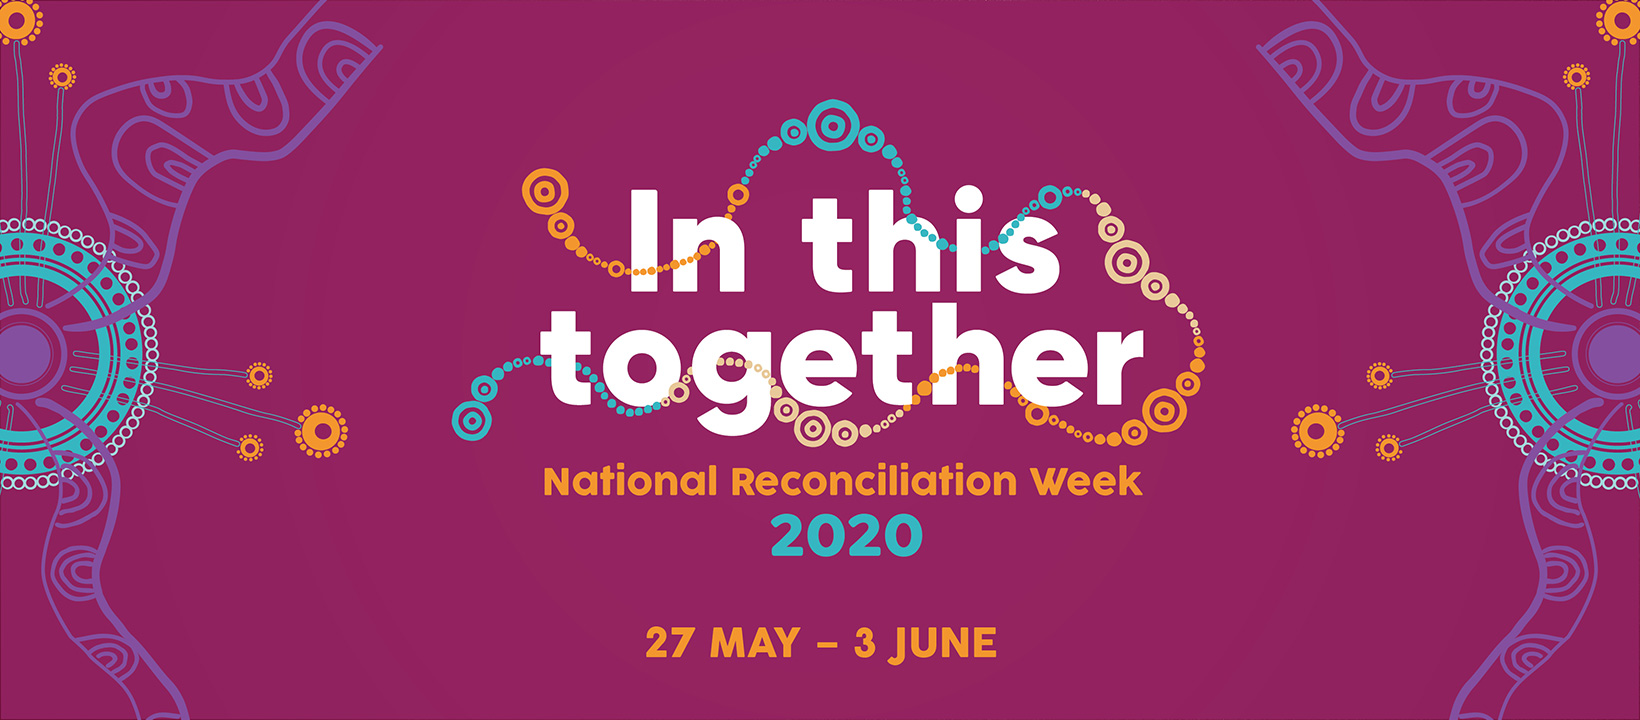 Celebrating National Reconciliation Week 2020: In This Together